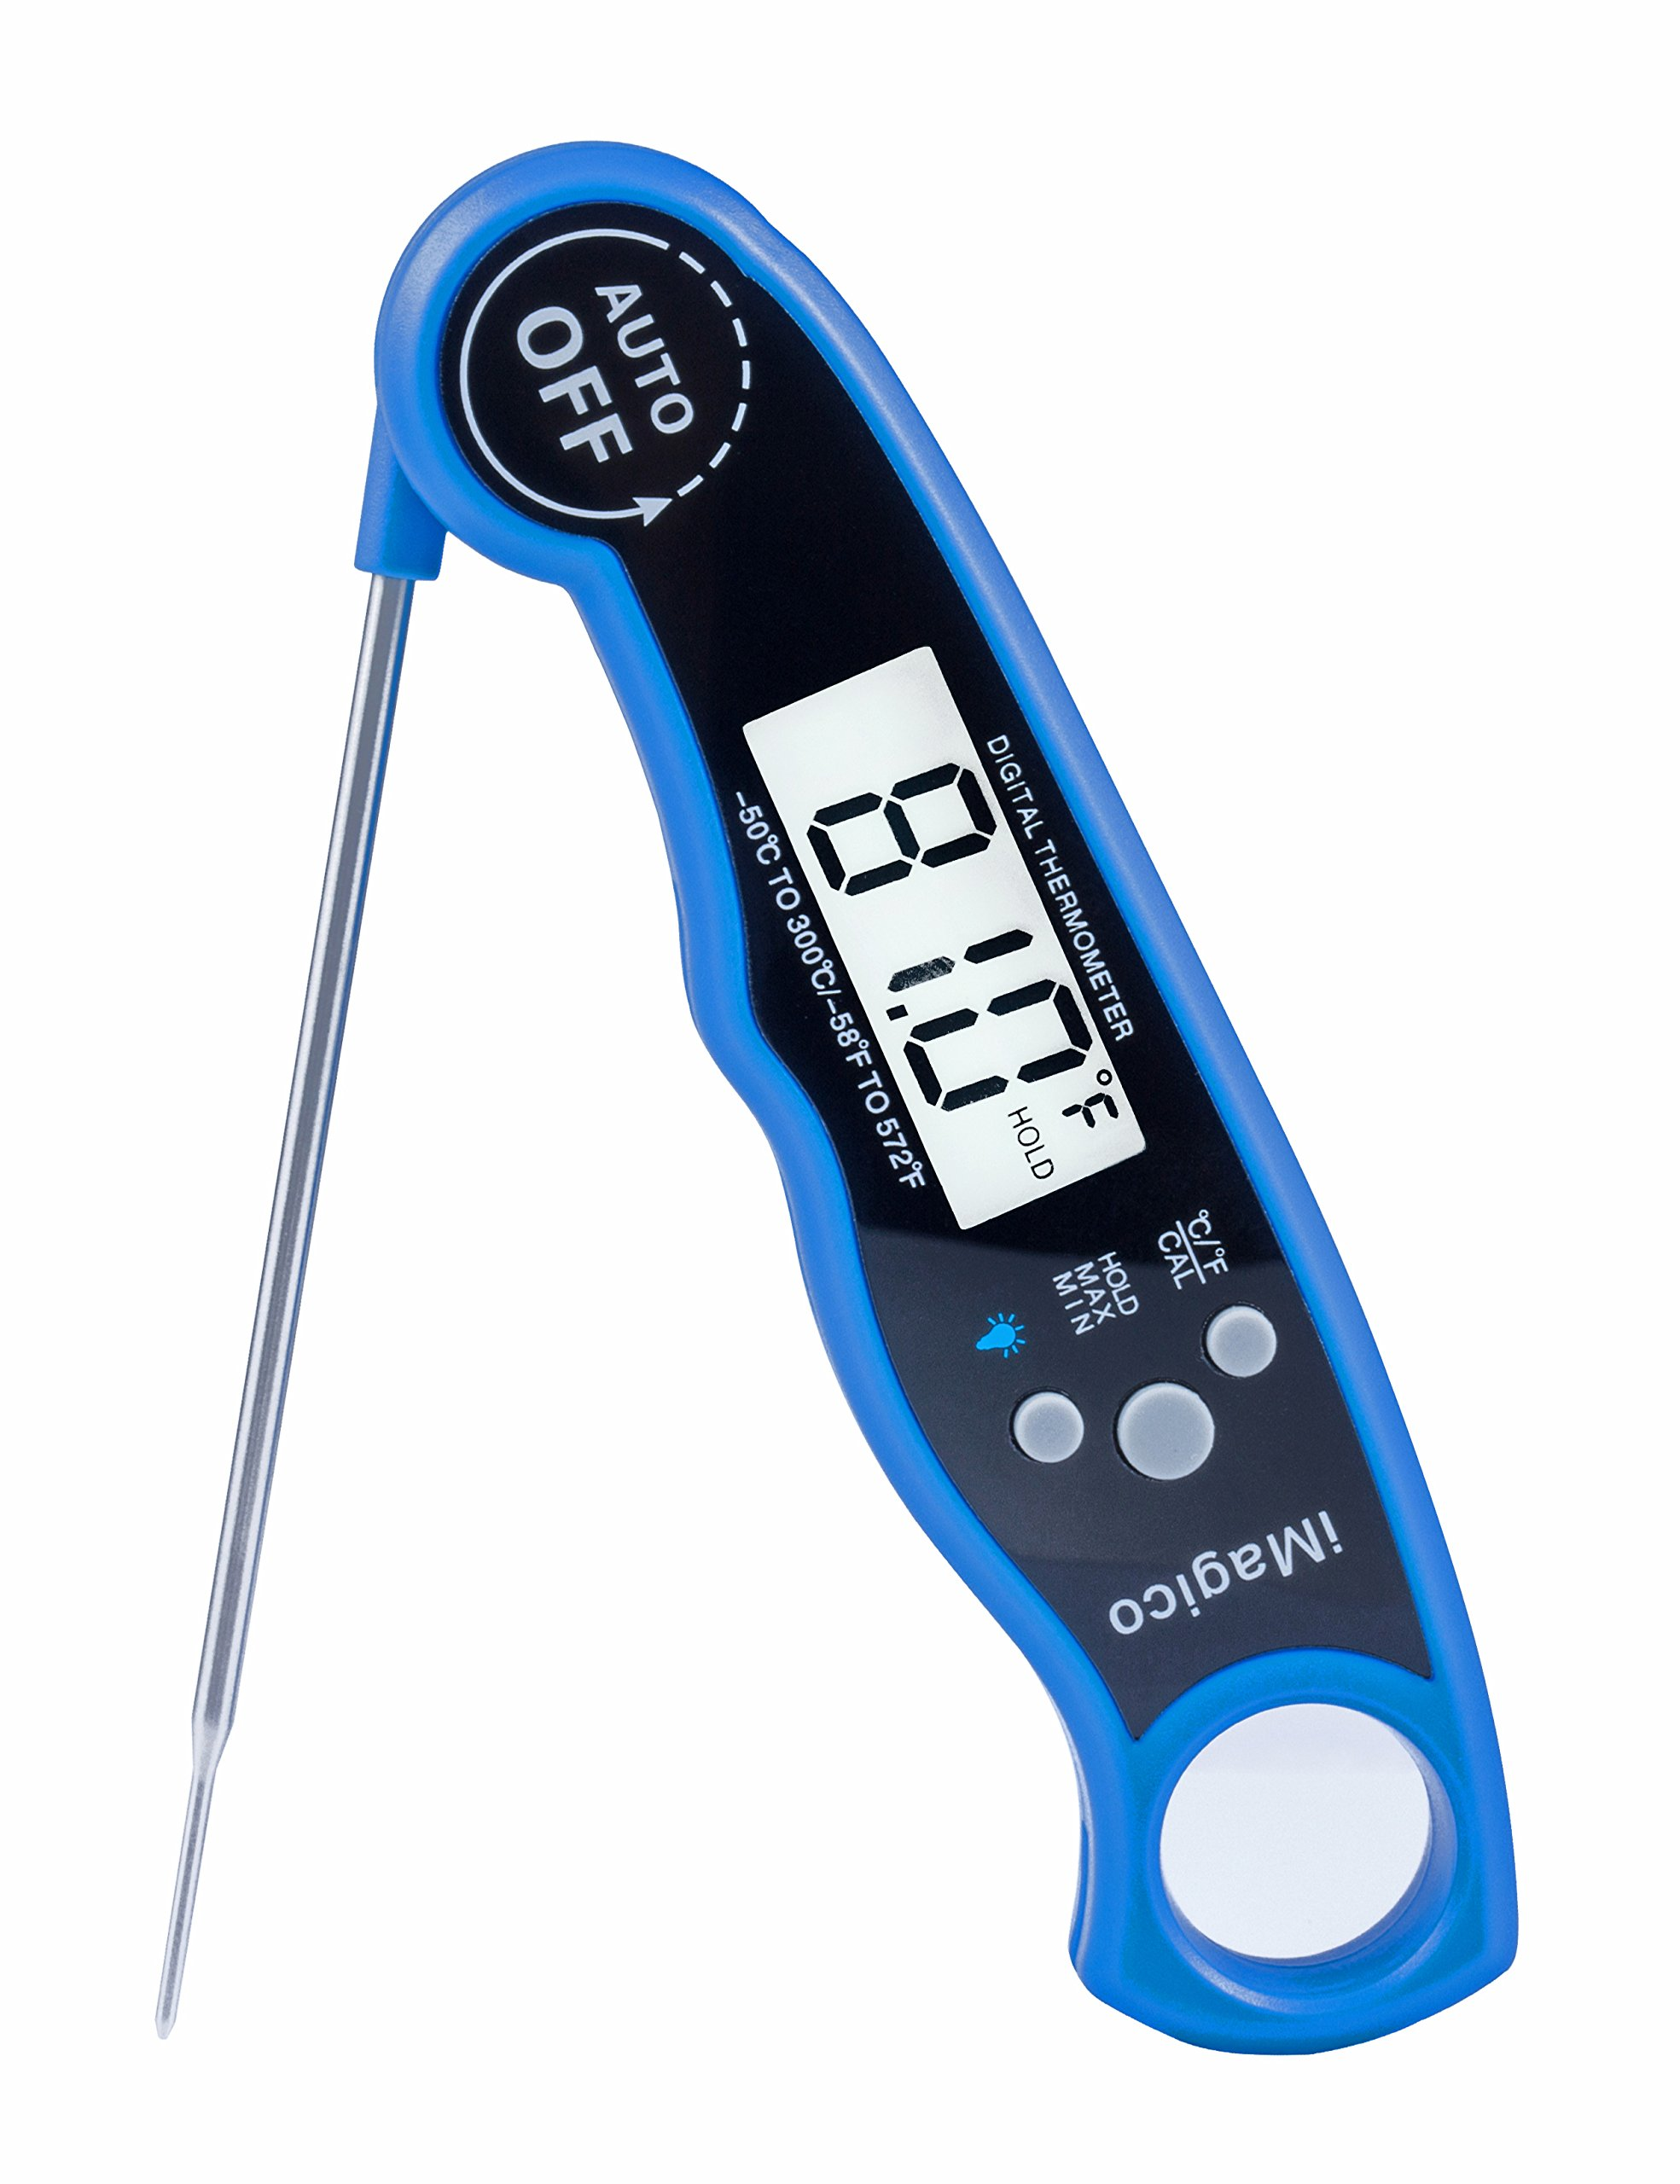 Super-Fast Digital Instant Read Meat Thermometer Waterproof Food Cooking Thermometer with Backlit Collapsible Probe, iMagico Kitchen Thermometer For Food, BBQ, Grill and Milk,Tea (Blue)